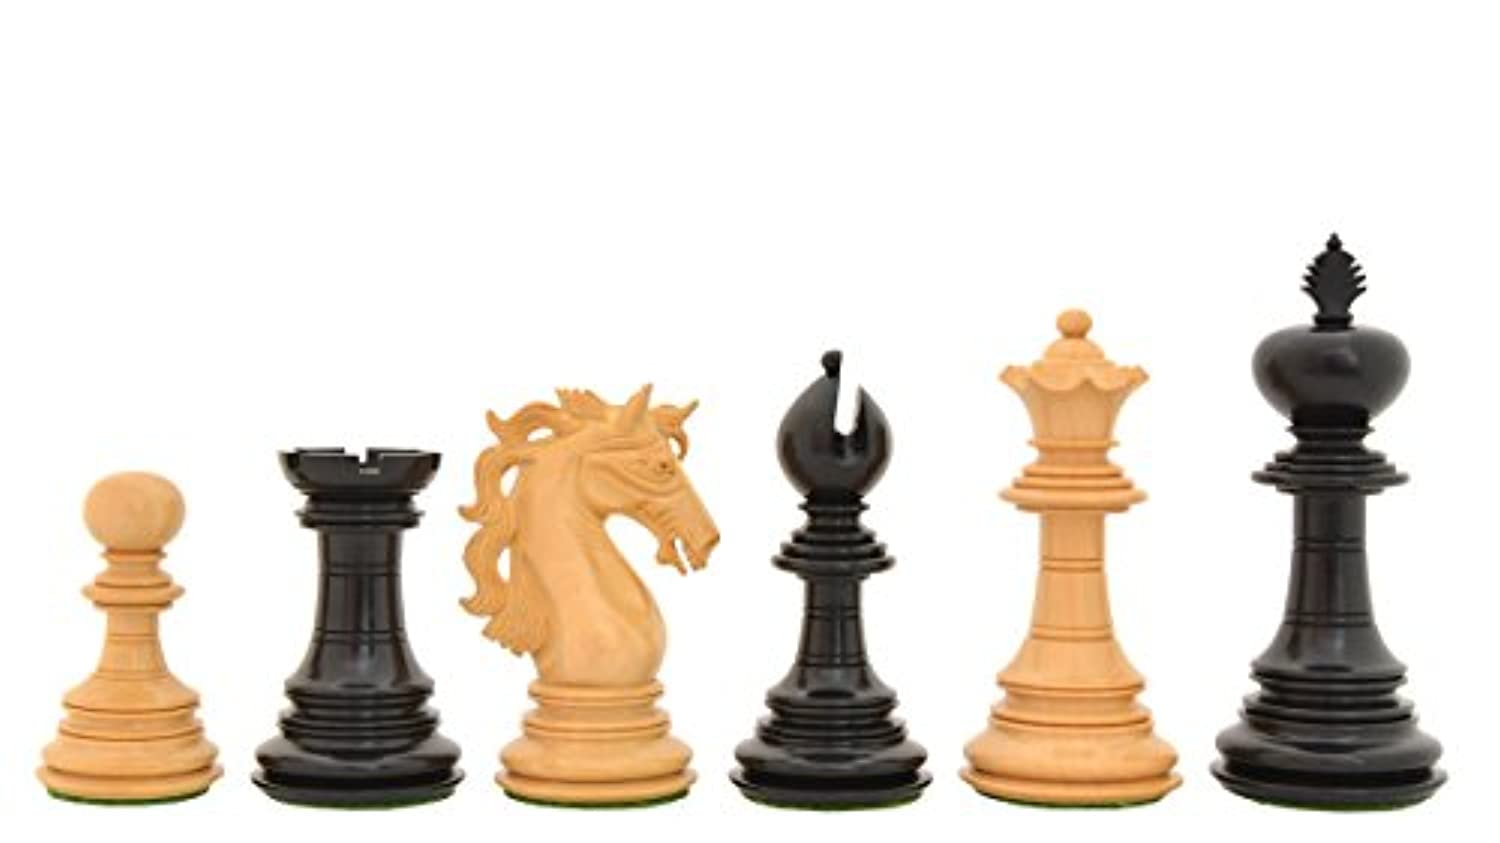 Chessbazaar American Adios Series Luxury Chess Set in Ebony / Box Wood - 4.4